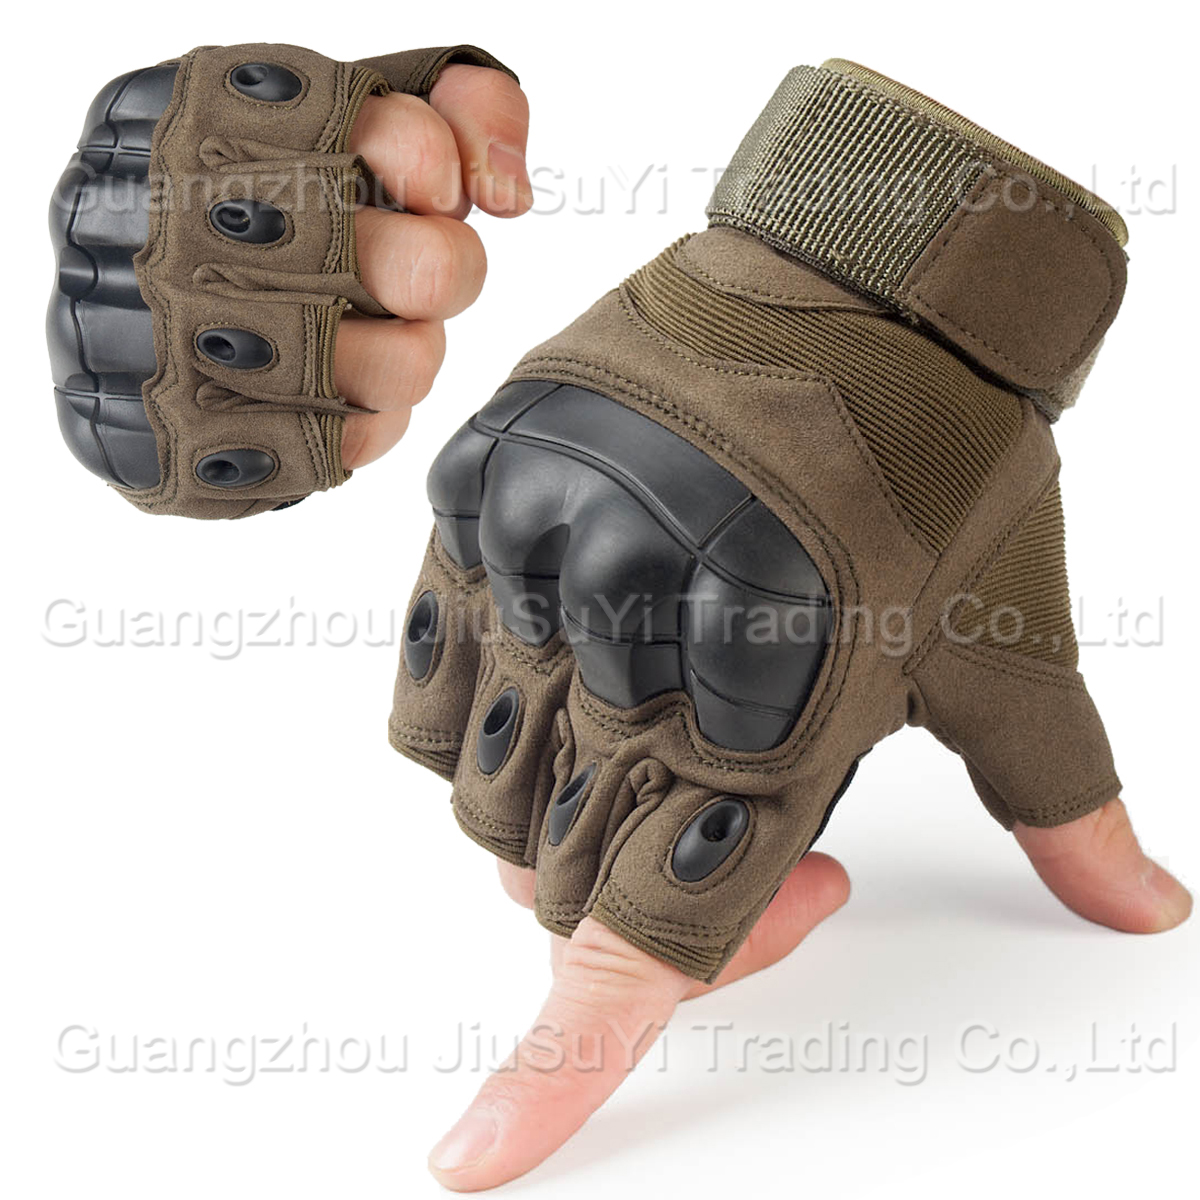 Tactical Fingerless Gloves Military Airsoft Outdoor Shooting Armed Combat Paintball Workout Carbon Knuckle Half Finger Gloves